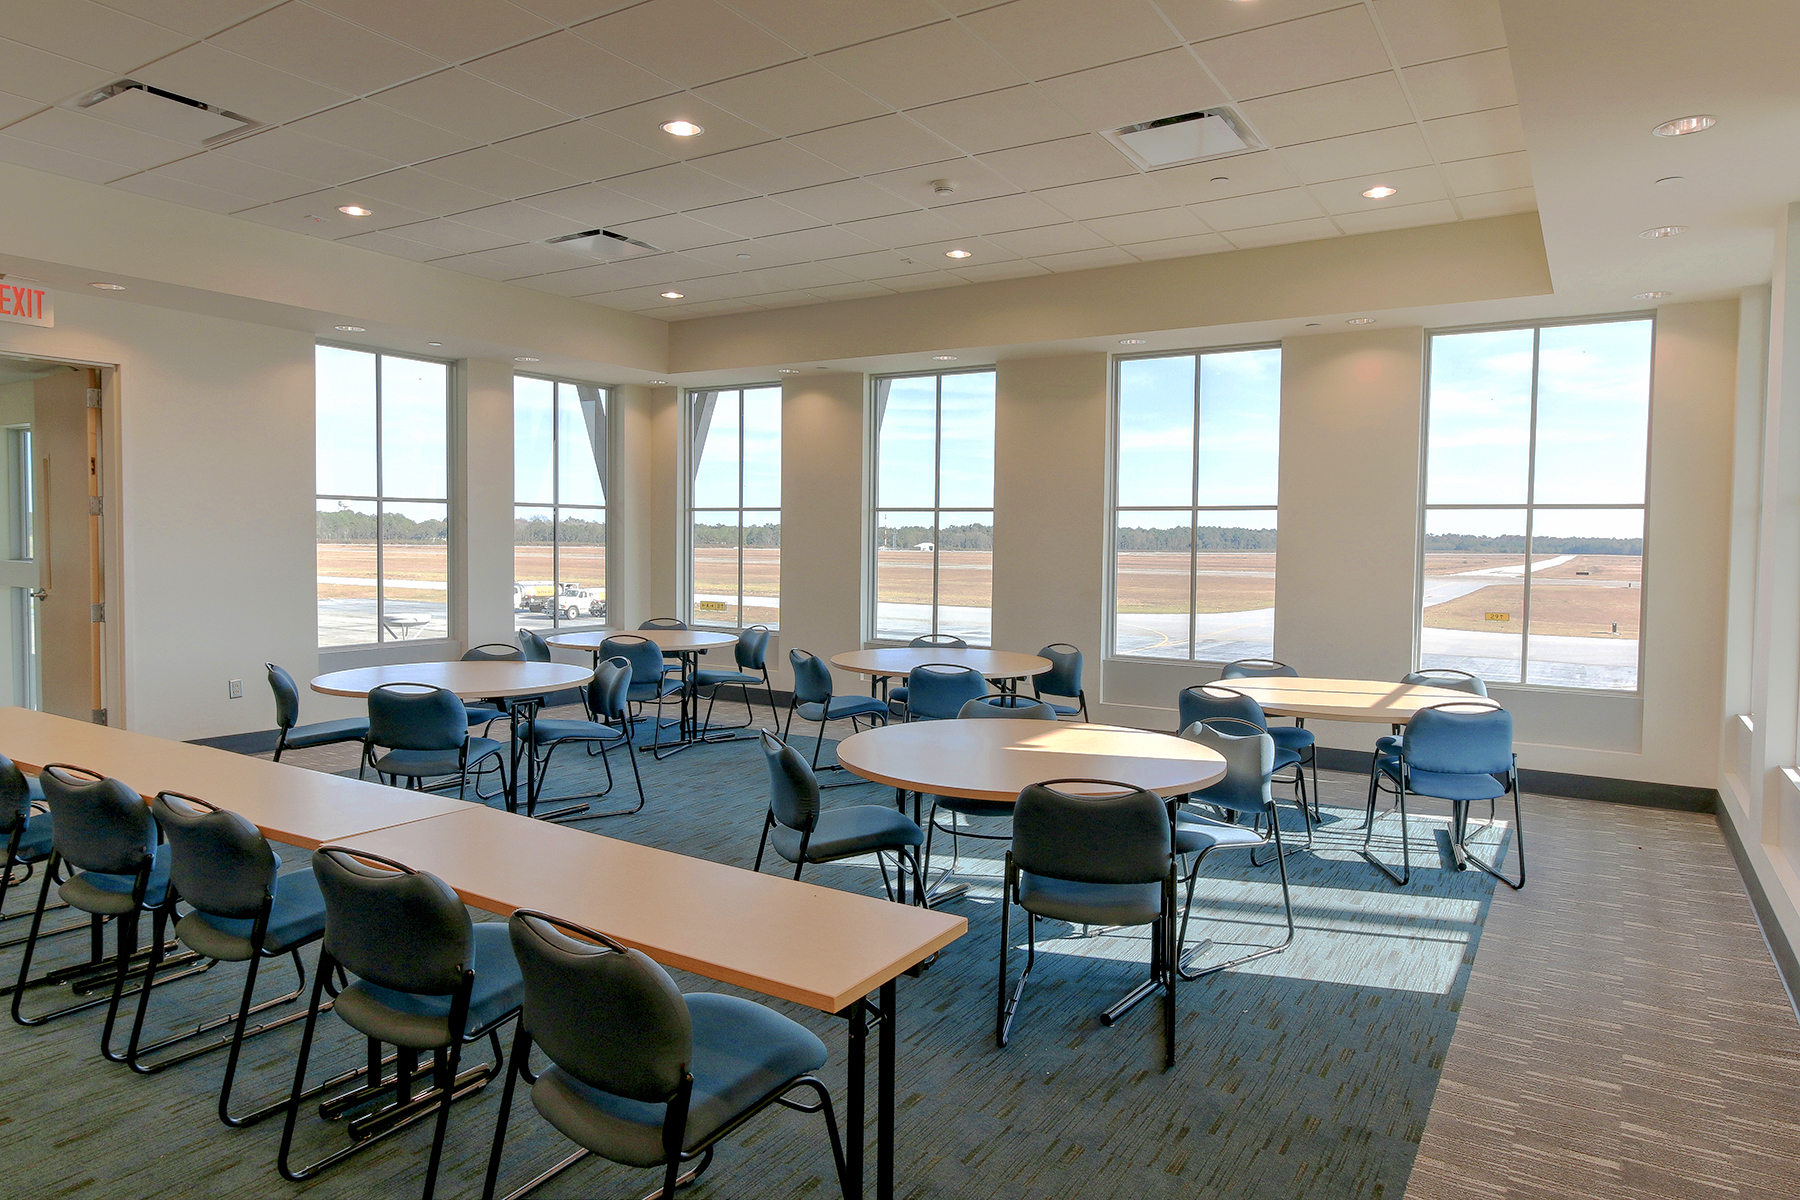 Airport Terminal - meeting room lt MLS.jpg